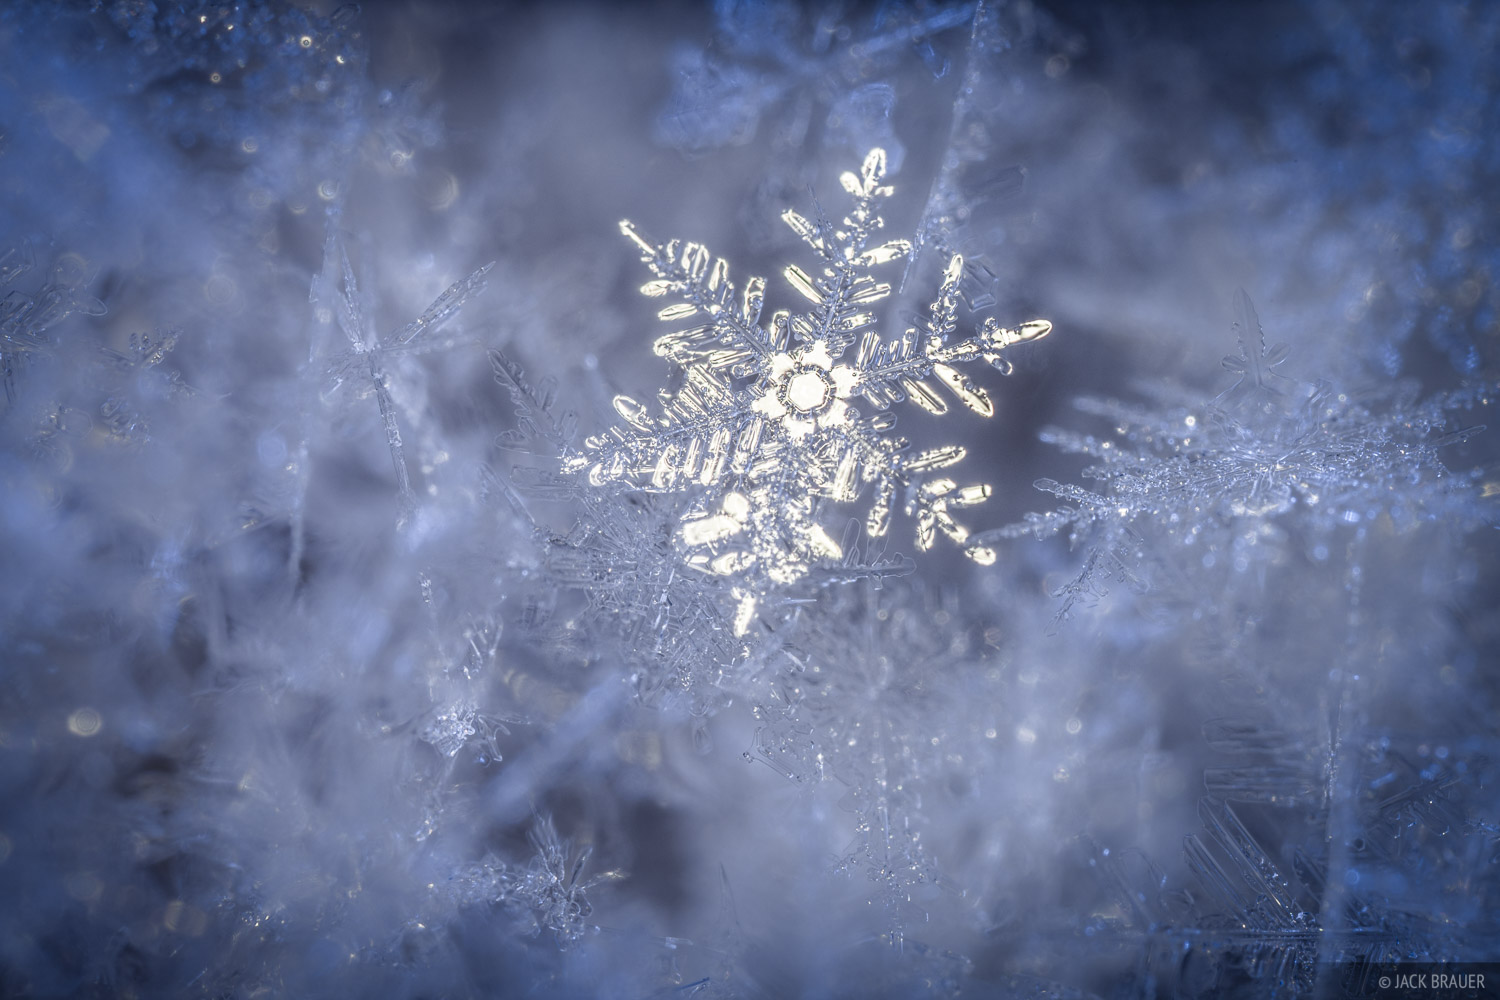 A macro perspective of a snowflake.